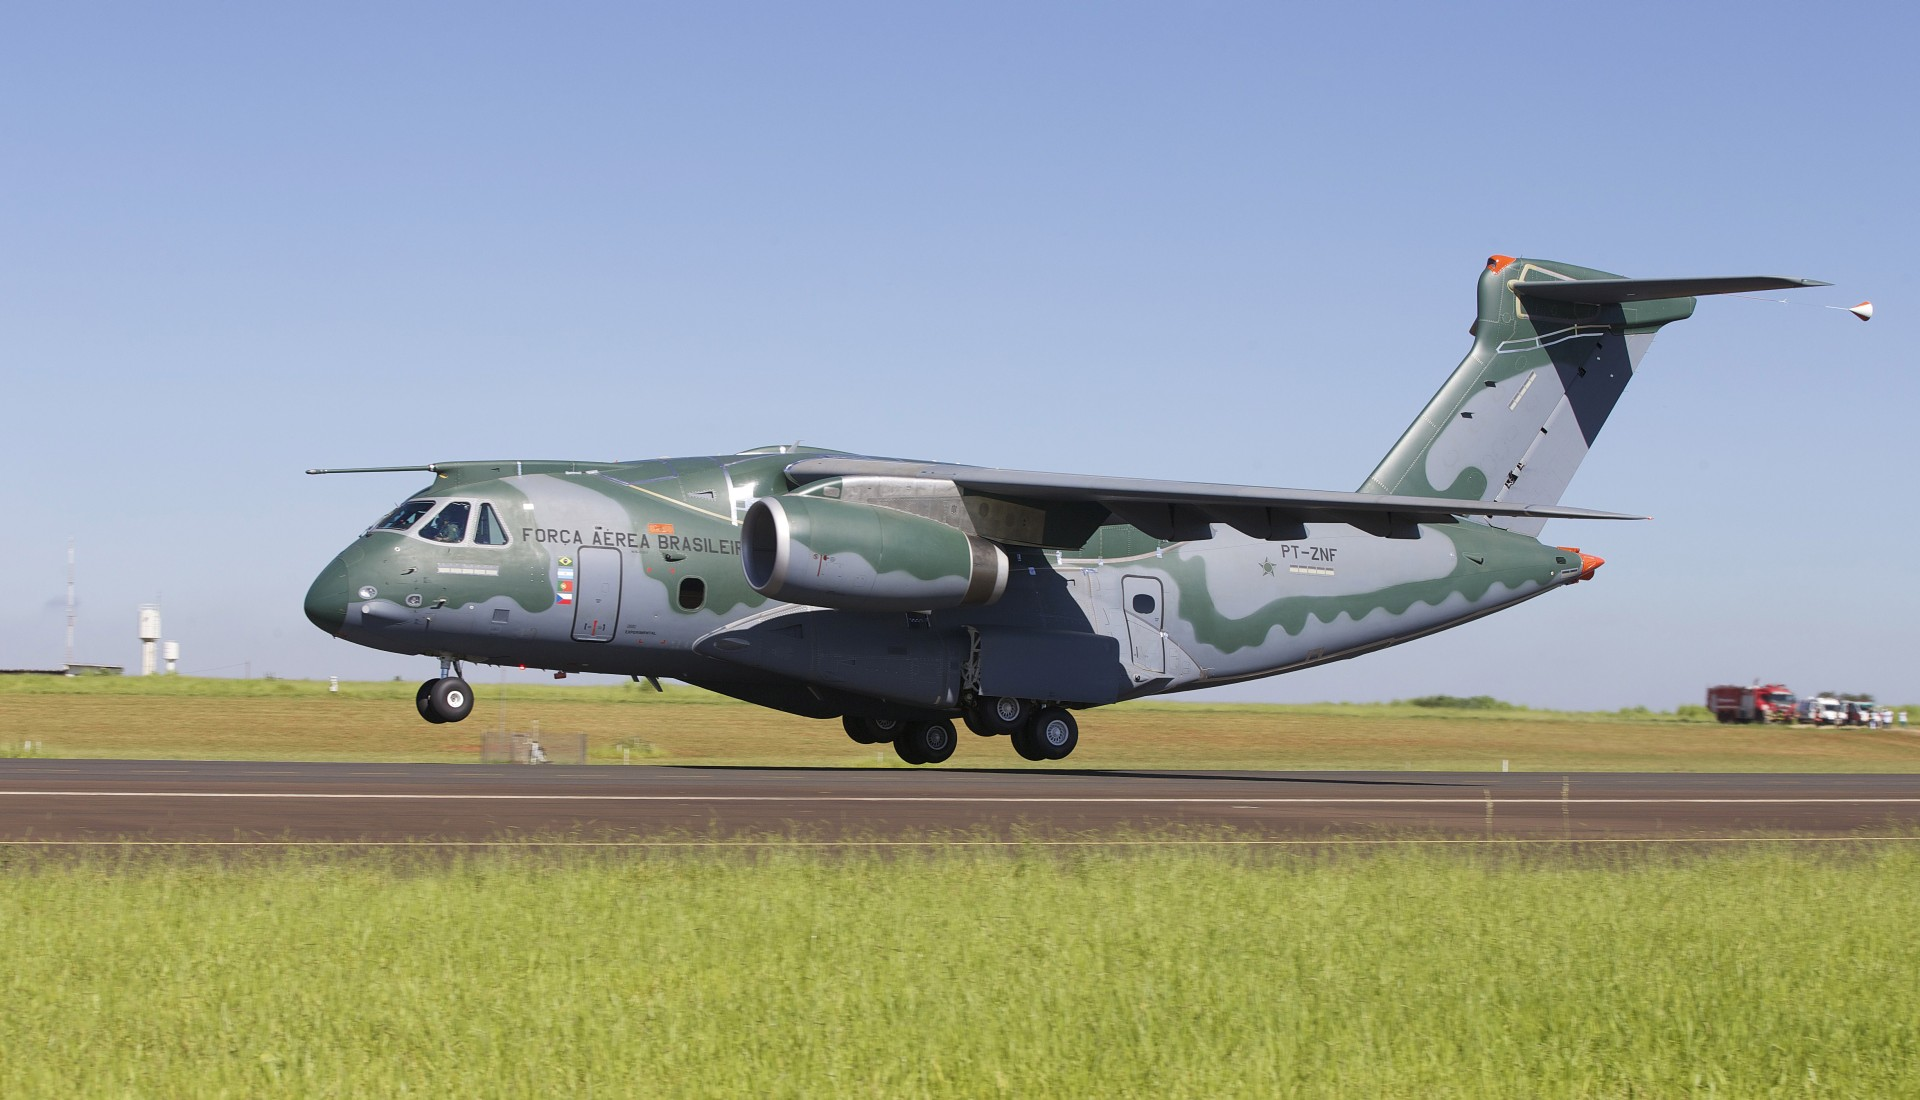 KC-390 Military Transport Aircraft